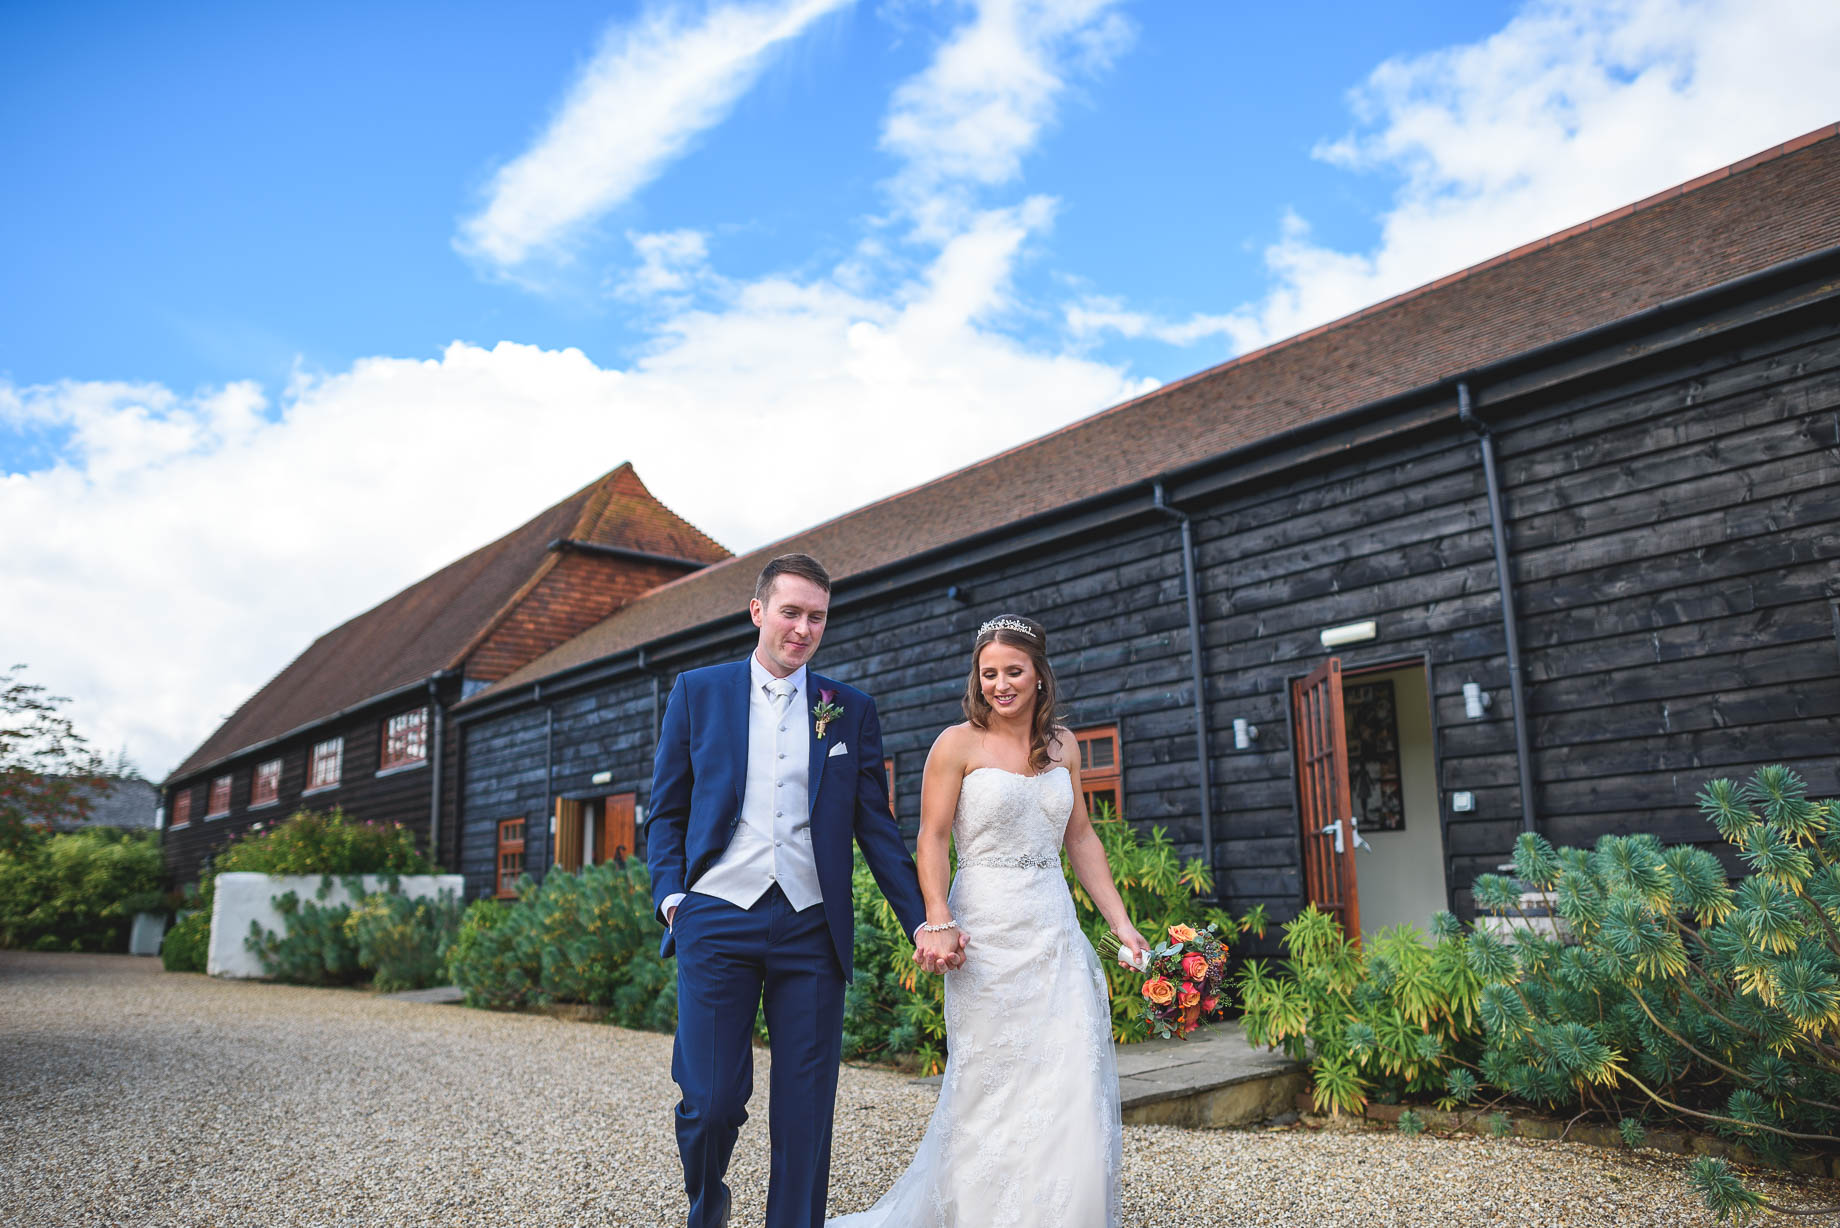 Gate Street Barn wedding photography - Guy Collier - Claire and Andy (72 of 192)